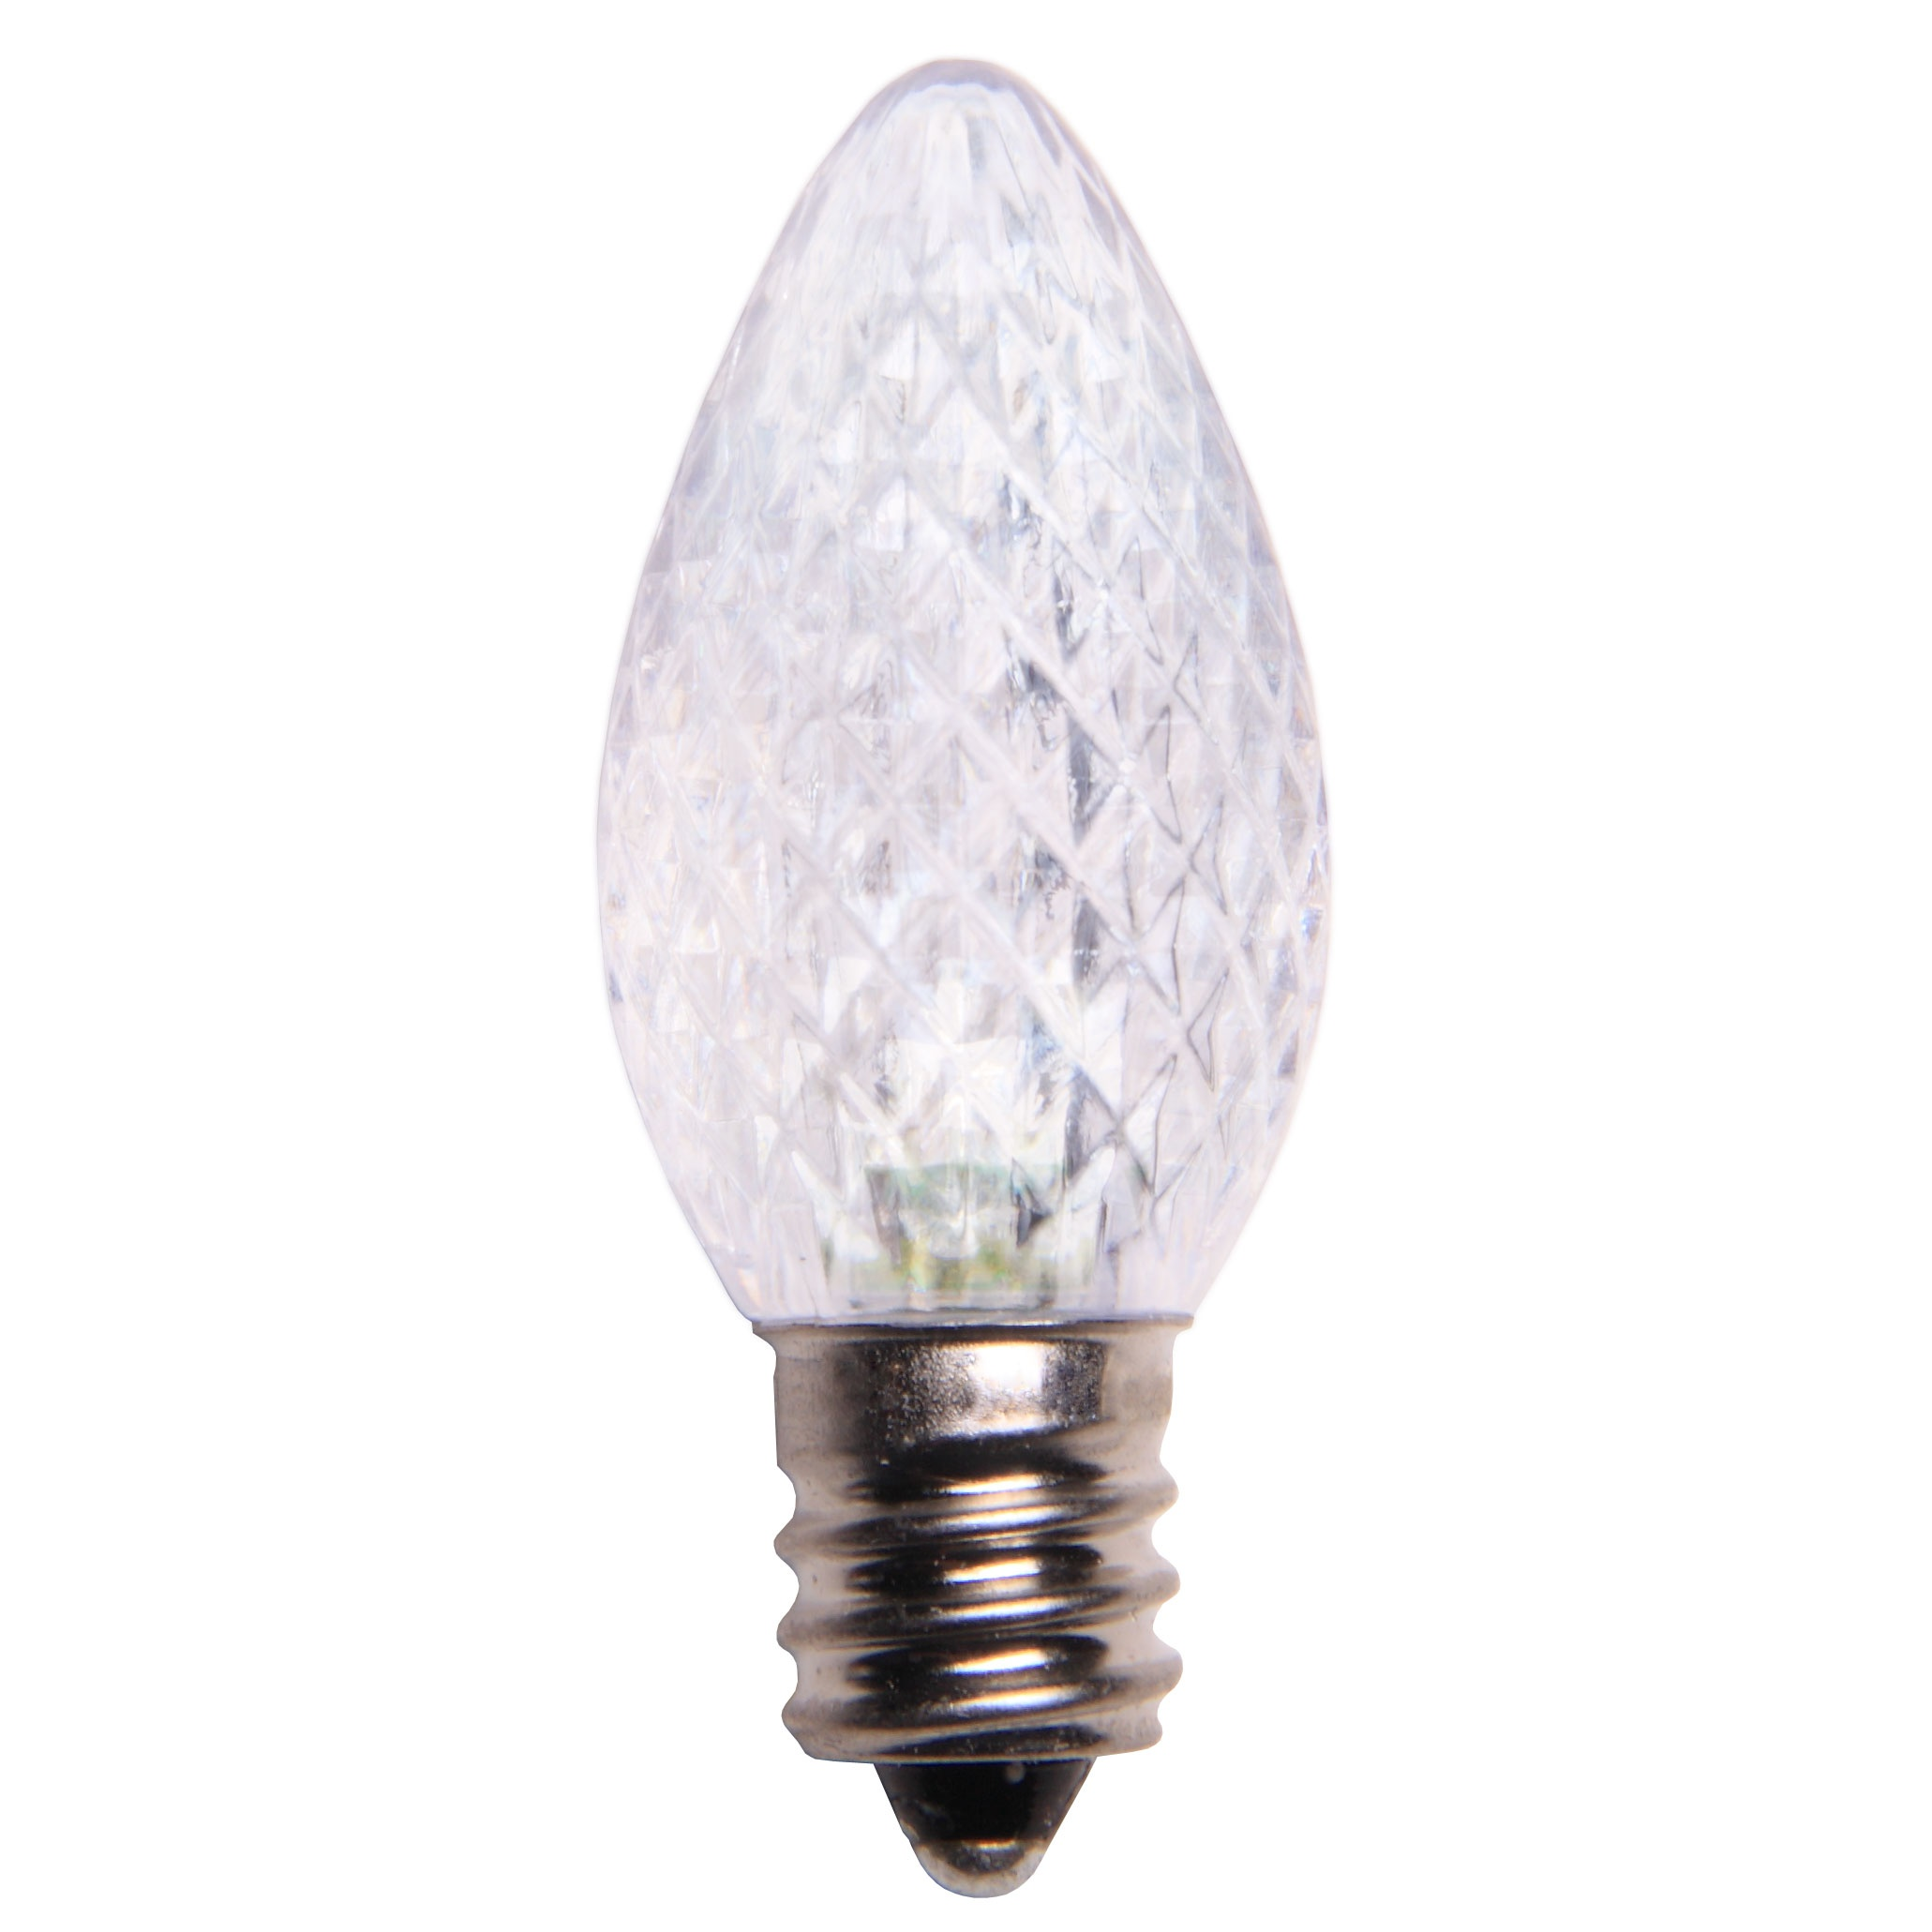 C7 LED Cool White Christmas Bulbs